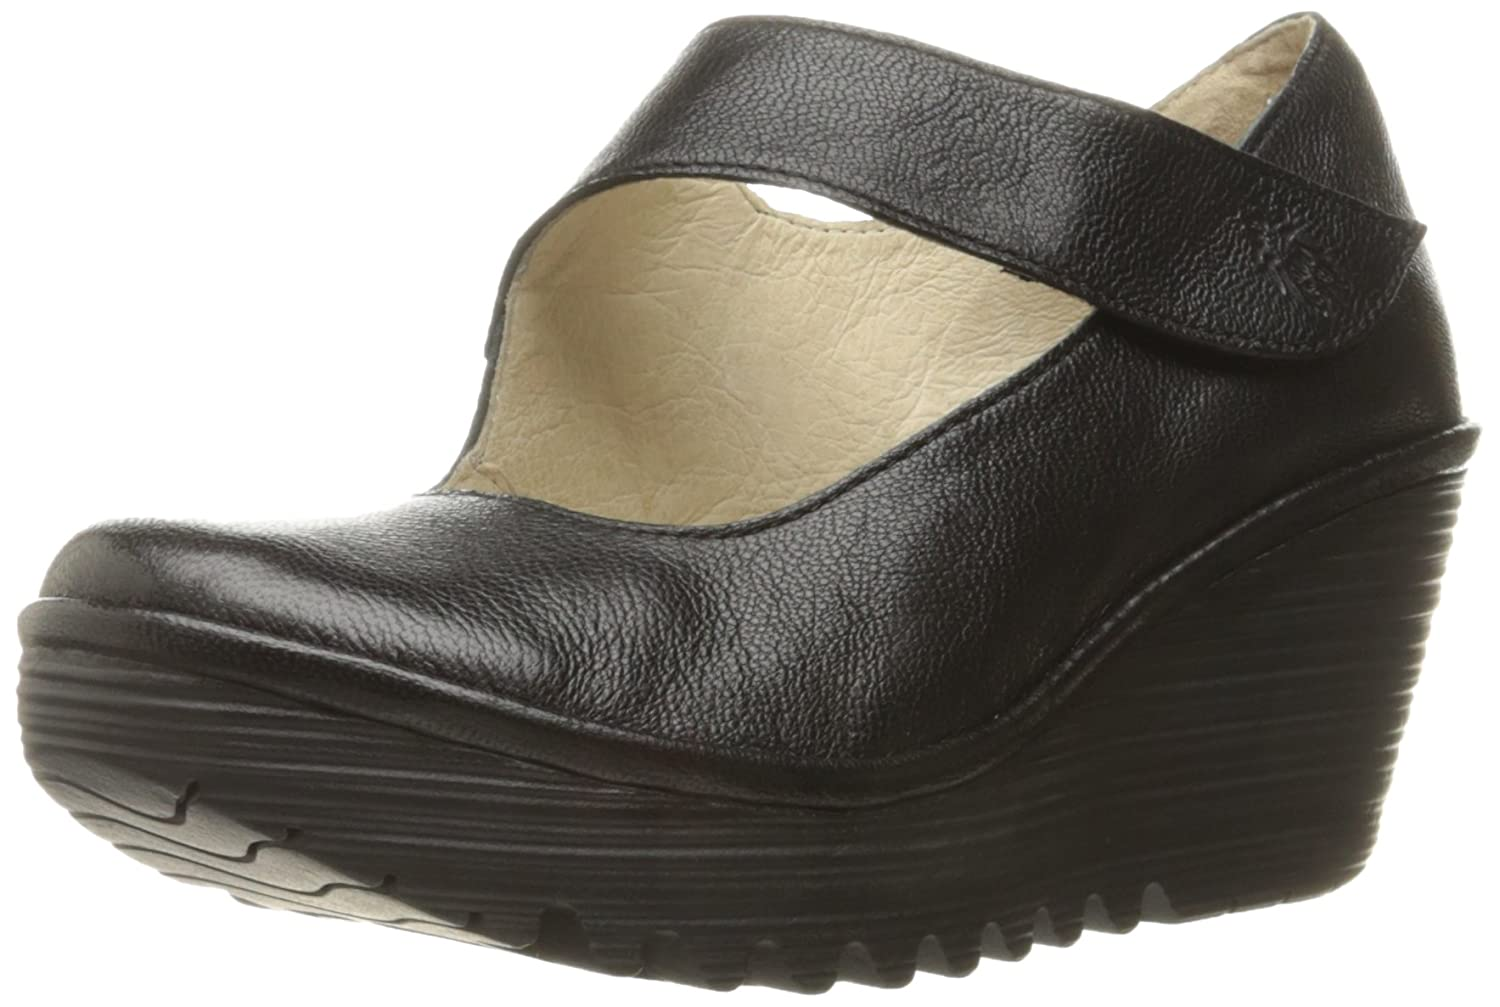 FLY London Women's Yasi682fly Wedge Pump B01HCC3UXM 39 M EU (8-8.5 US)|Black Mousse